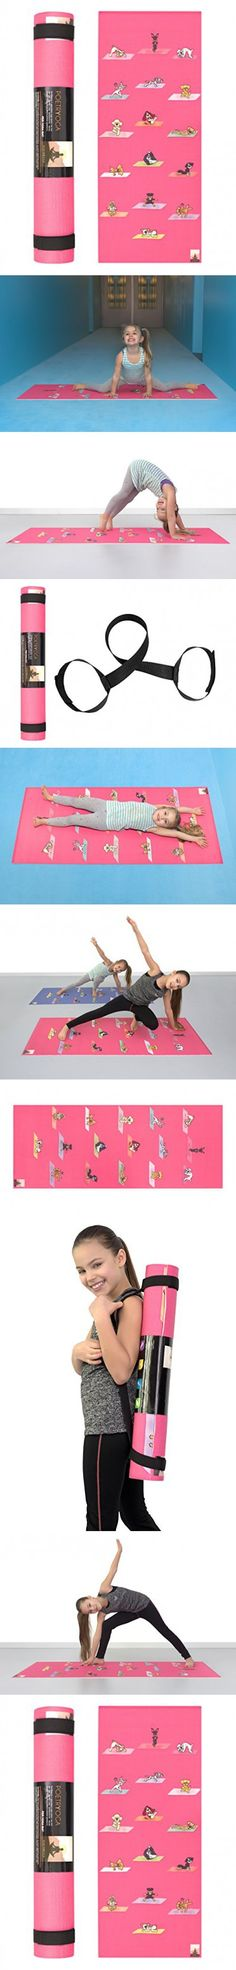 POETRYOGA - Kids Yoga Mat - with Carry Strap - 60x24 Inches 4mm - PER - Eco-Friendly SGS Approved Non-Toxic No Phthalates or Latex - Durable - Multi Purpose - Yoga Dogs Poses (Magenta)